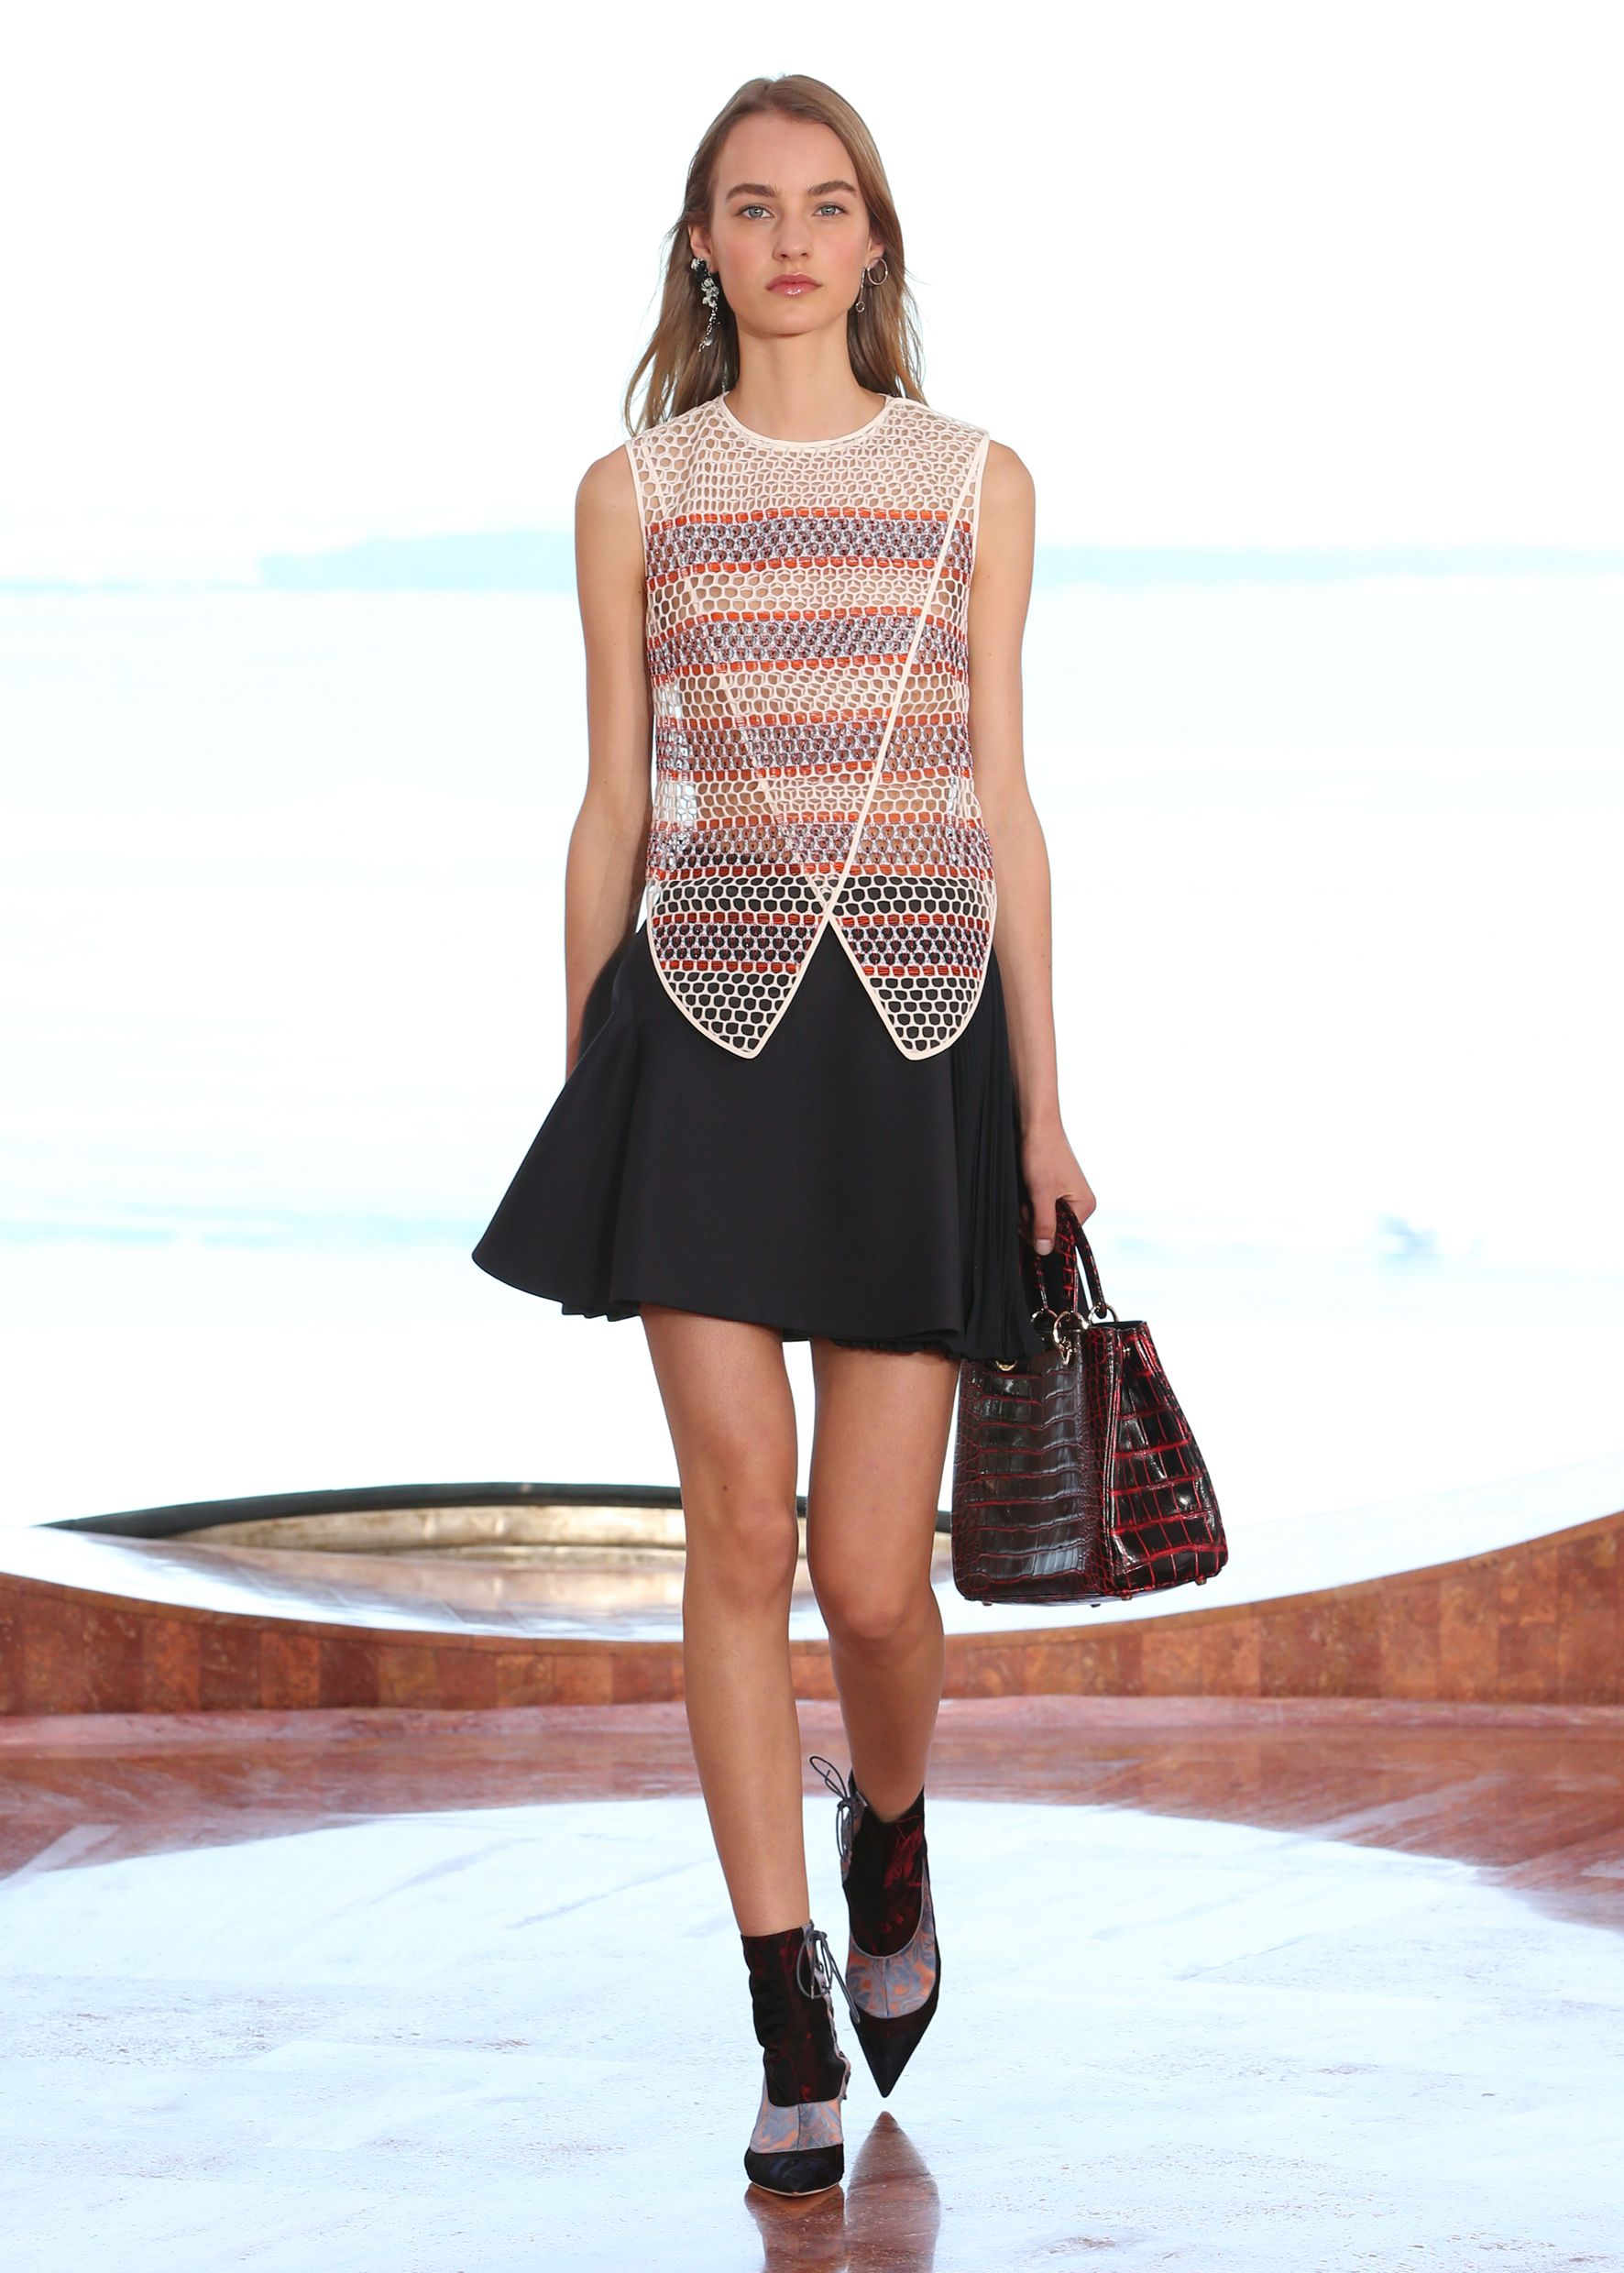 Christian Dior Cruise 2016 Collection  - ELLE.com